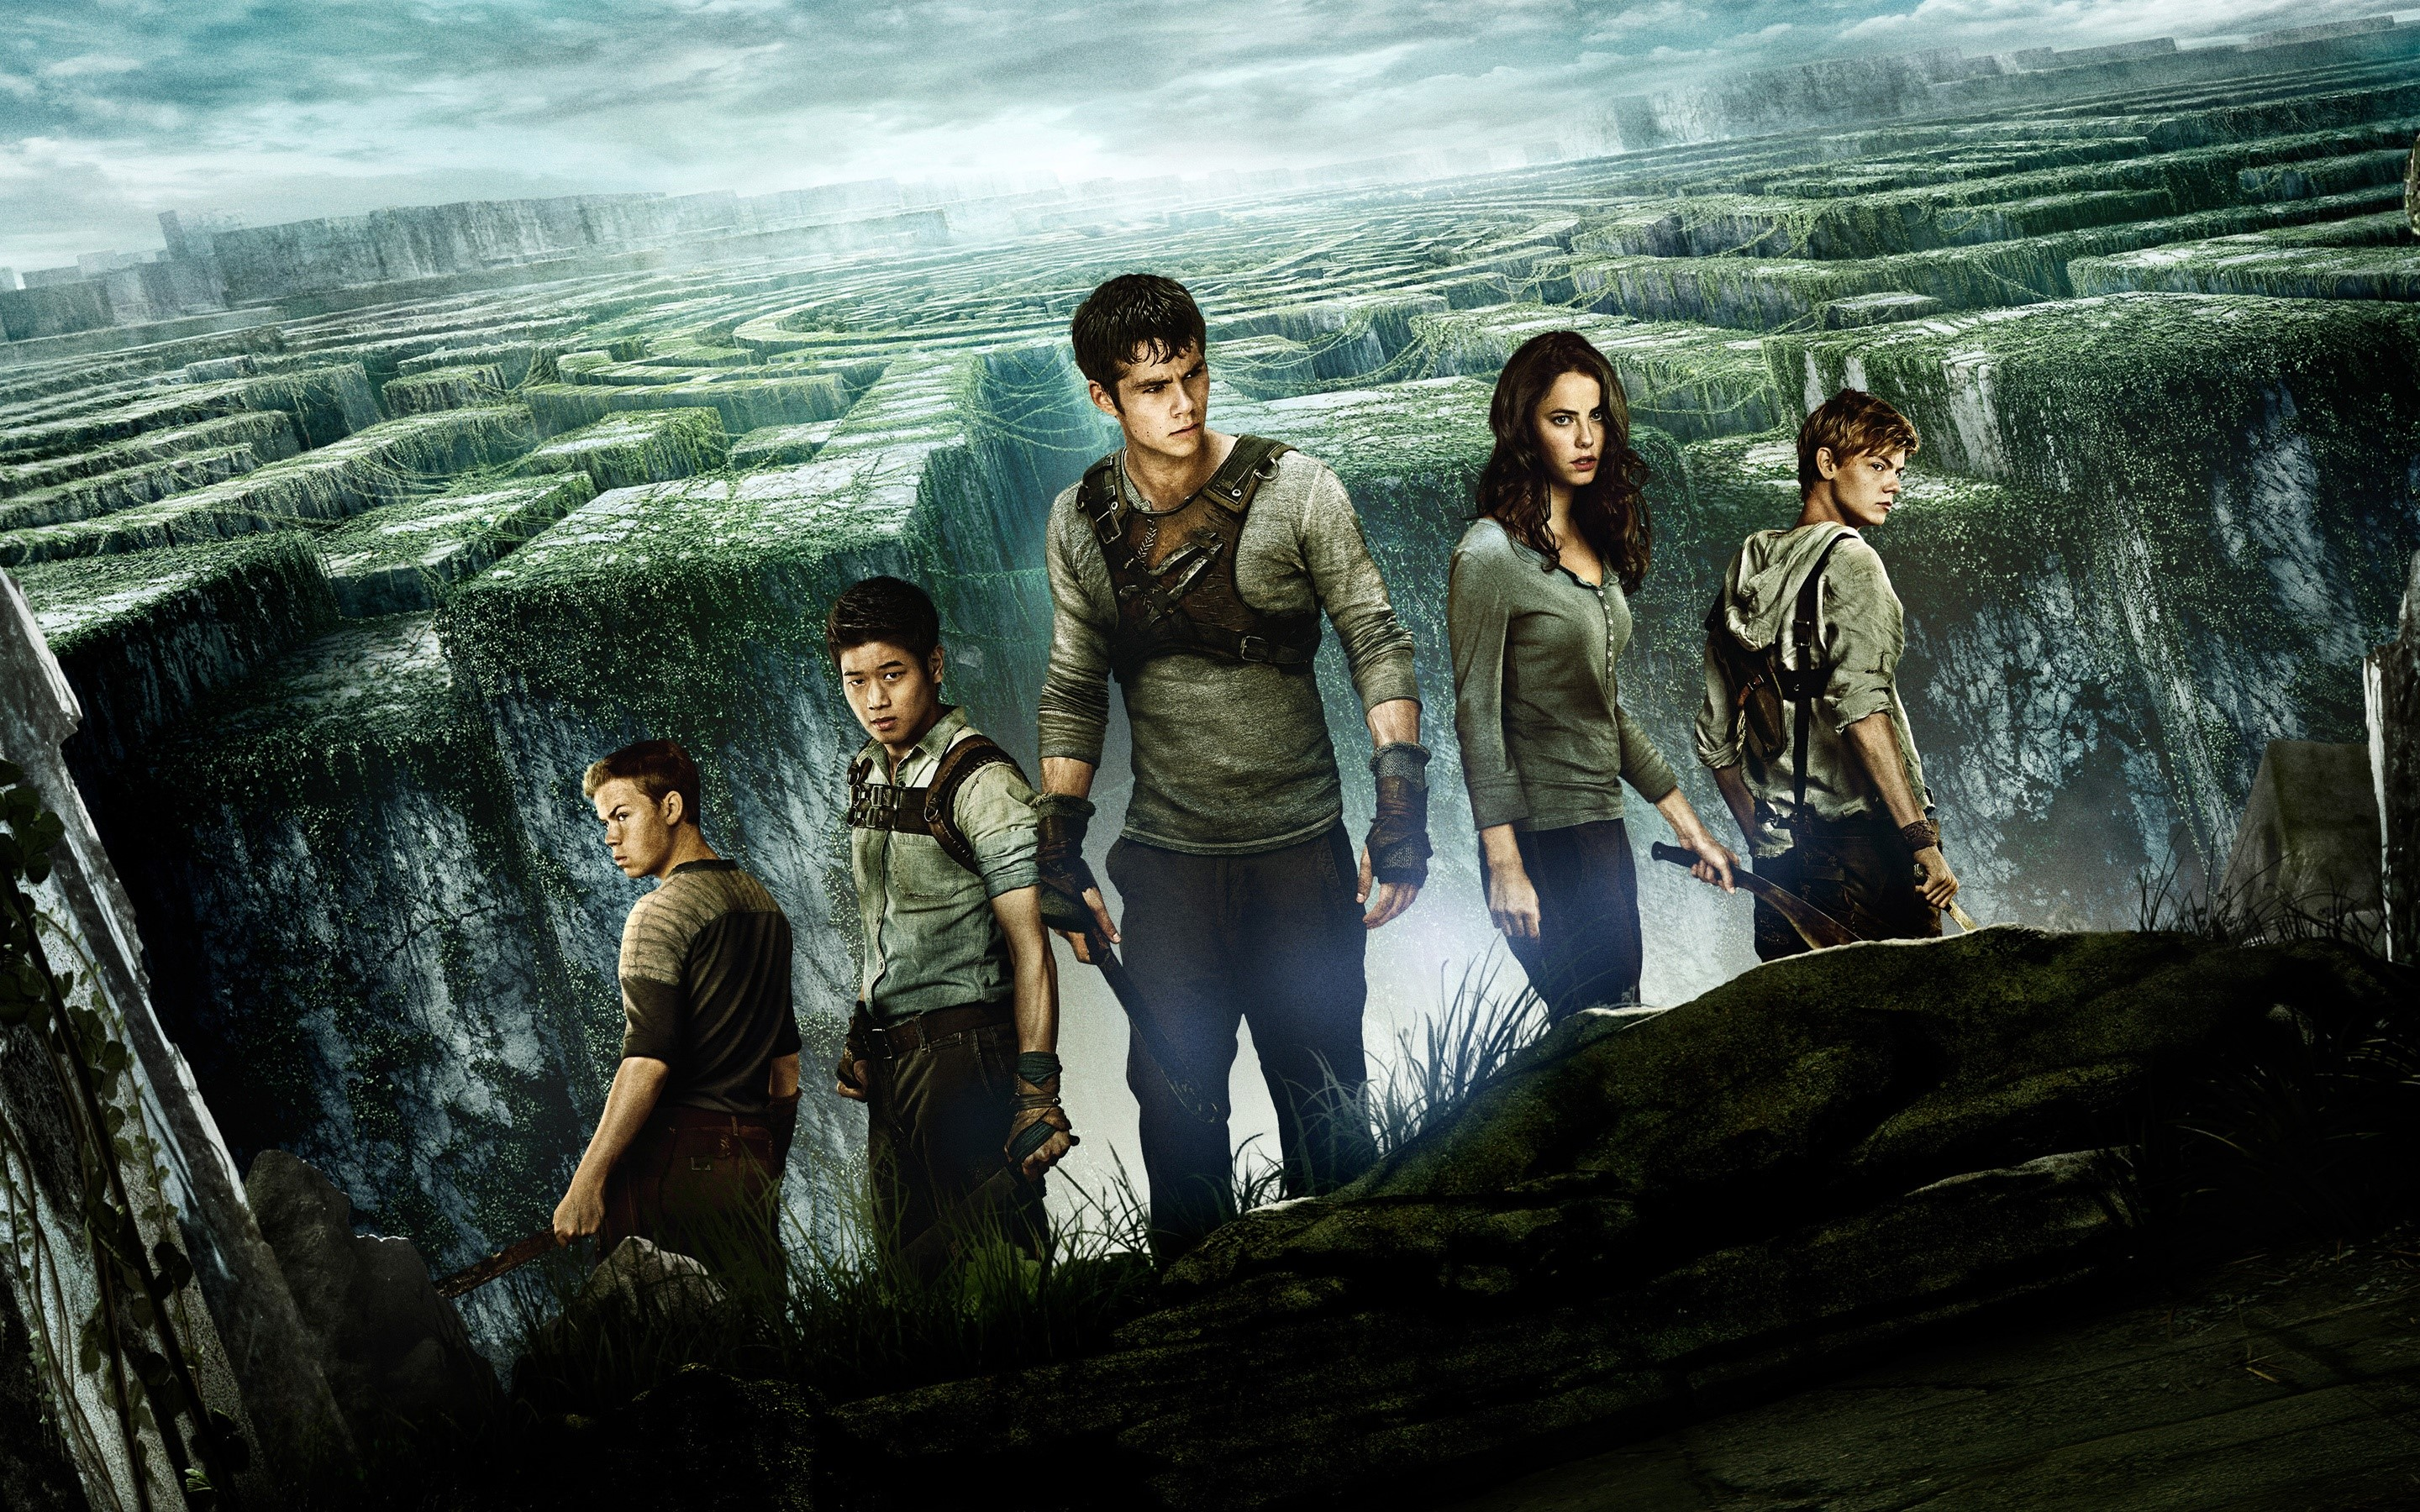 Fondos de pantalla The maze runner